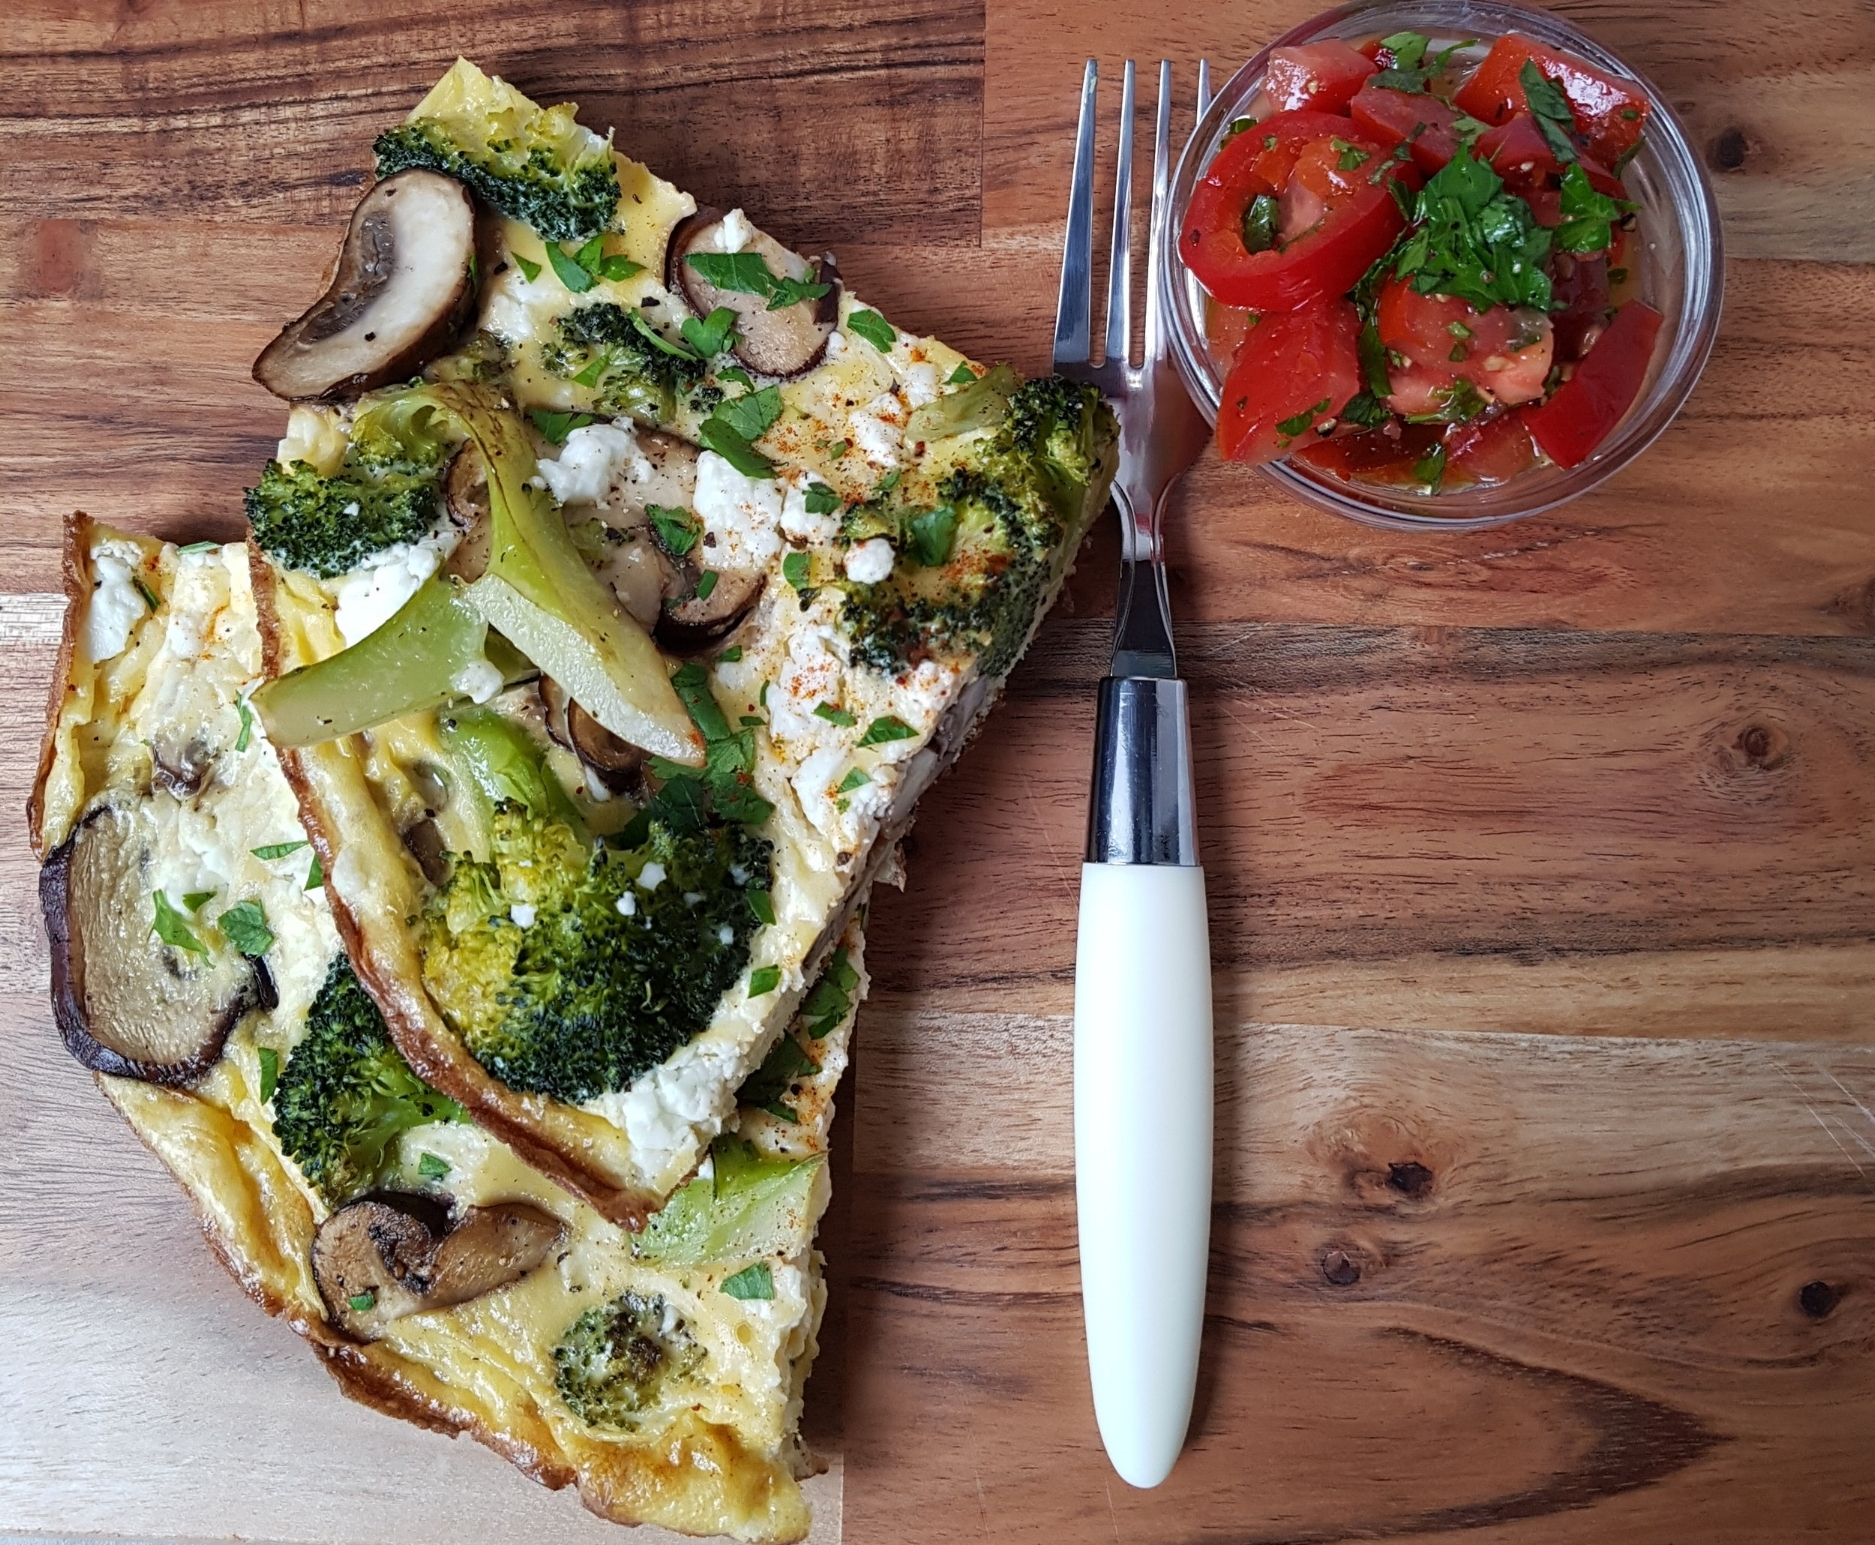 portion-frittata-mushrooms-broccoli.jpg